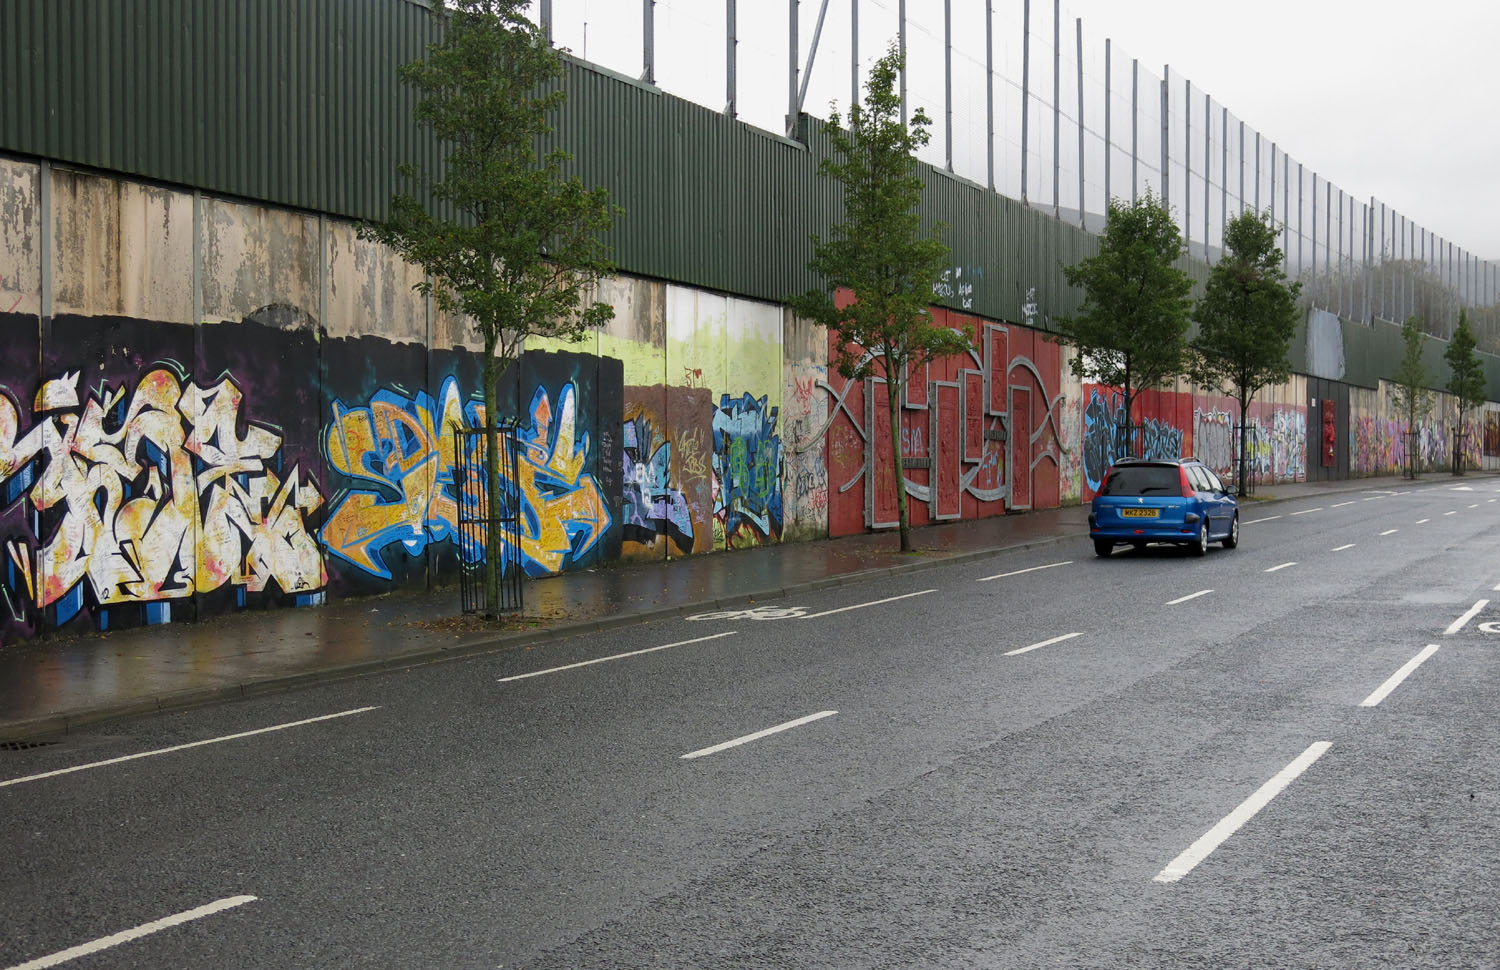 Northern-Ireland-Belfast-The-Troubles-Peace-Wall-Loyalist-Side